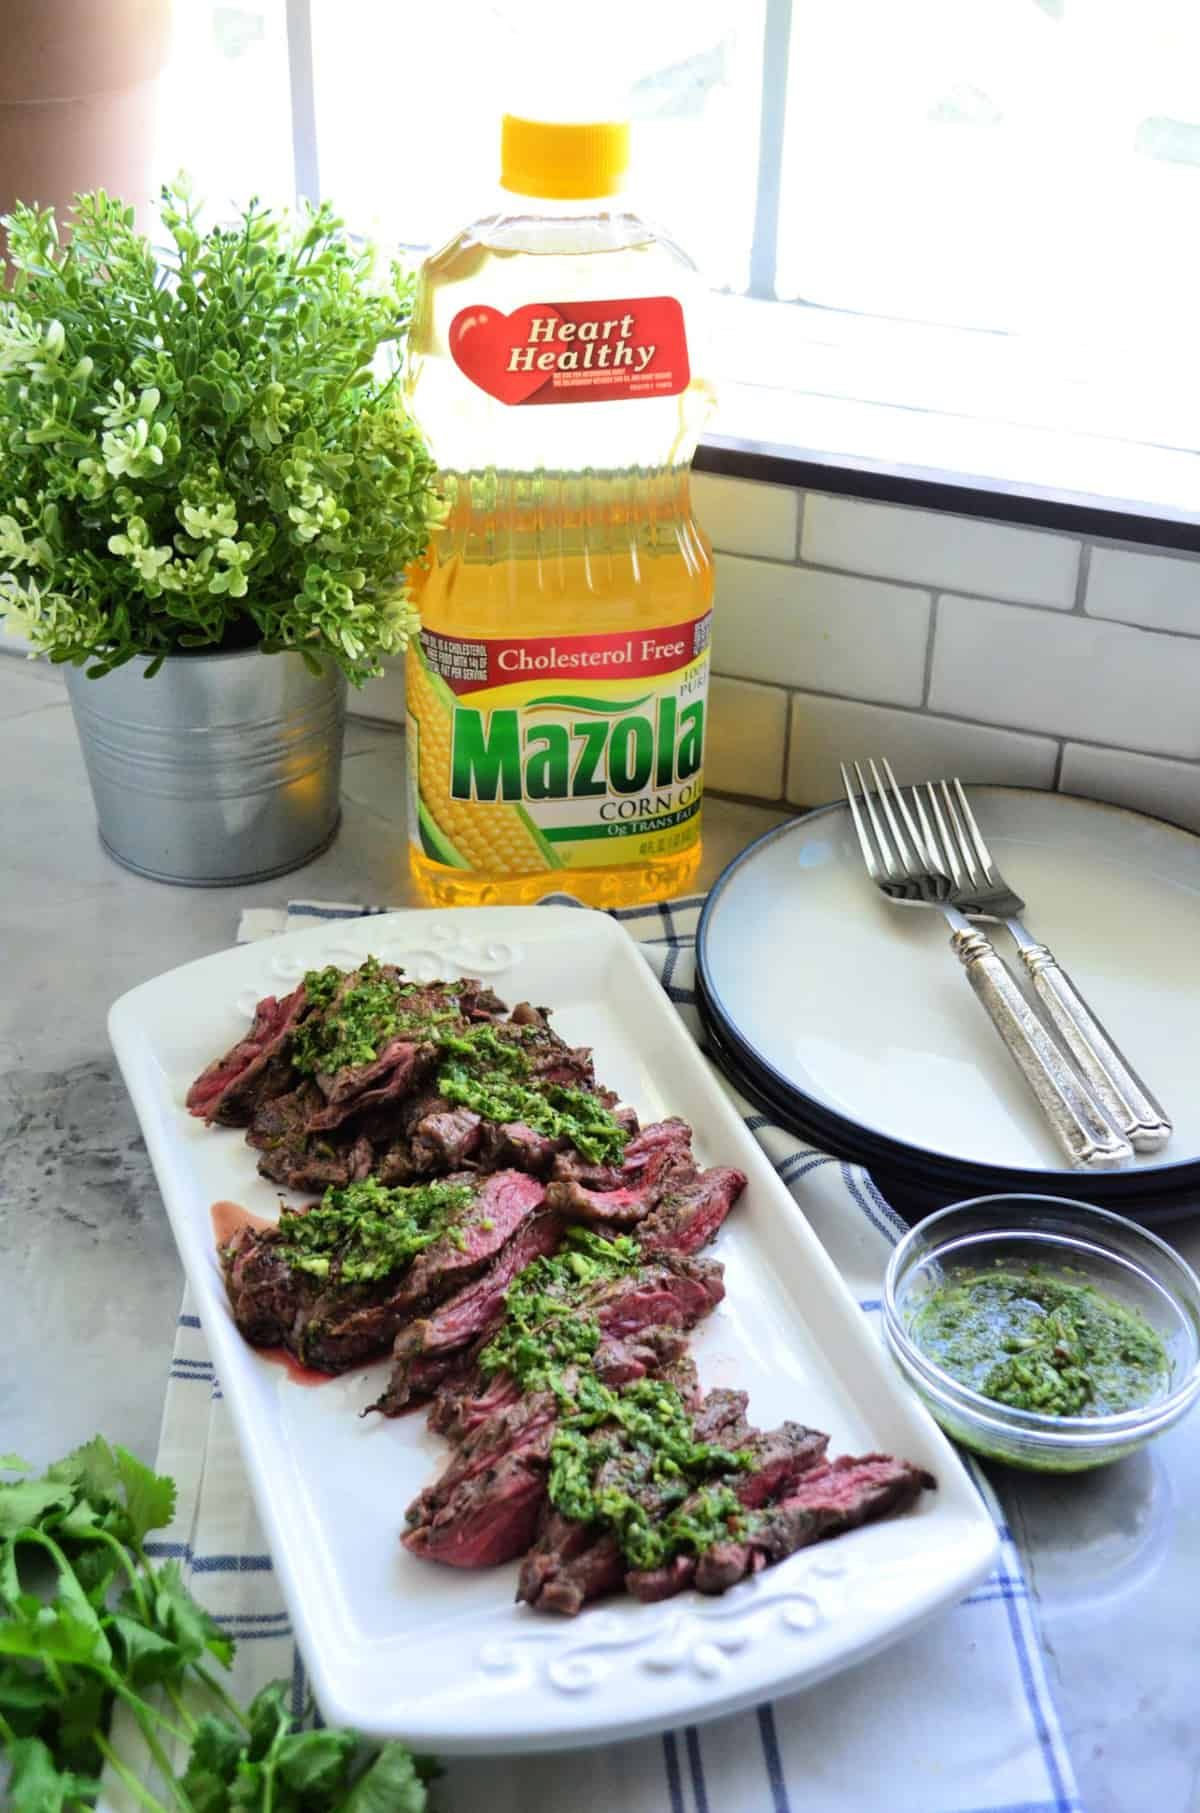 platter of sliced Grilled Skirt Steak topped with Chimichurri Sauce in front of Mazola Corn Oil.